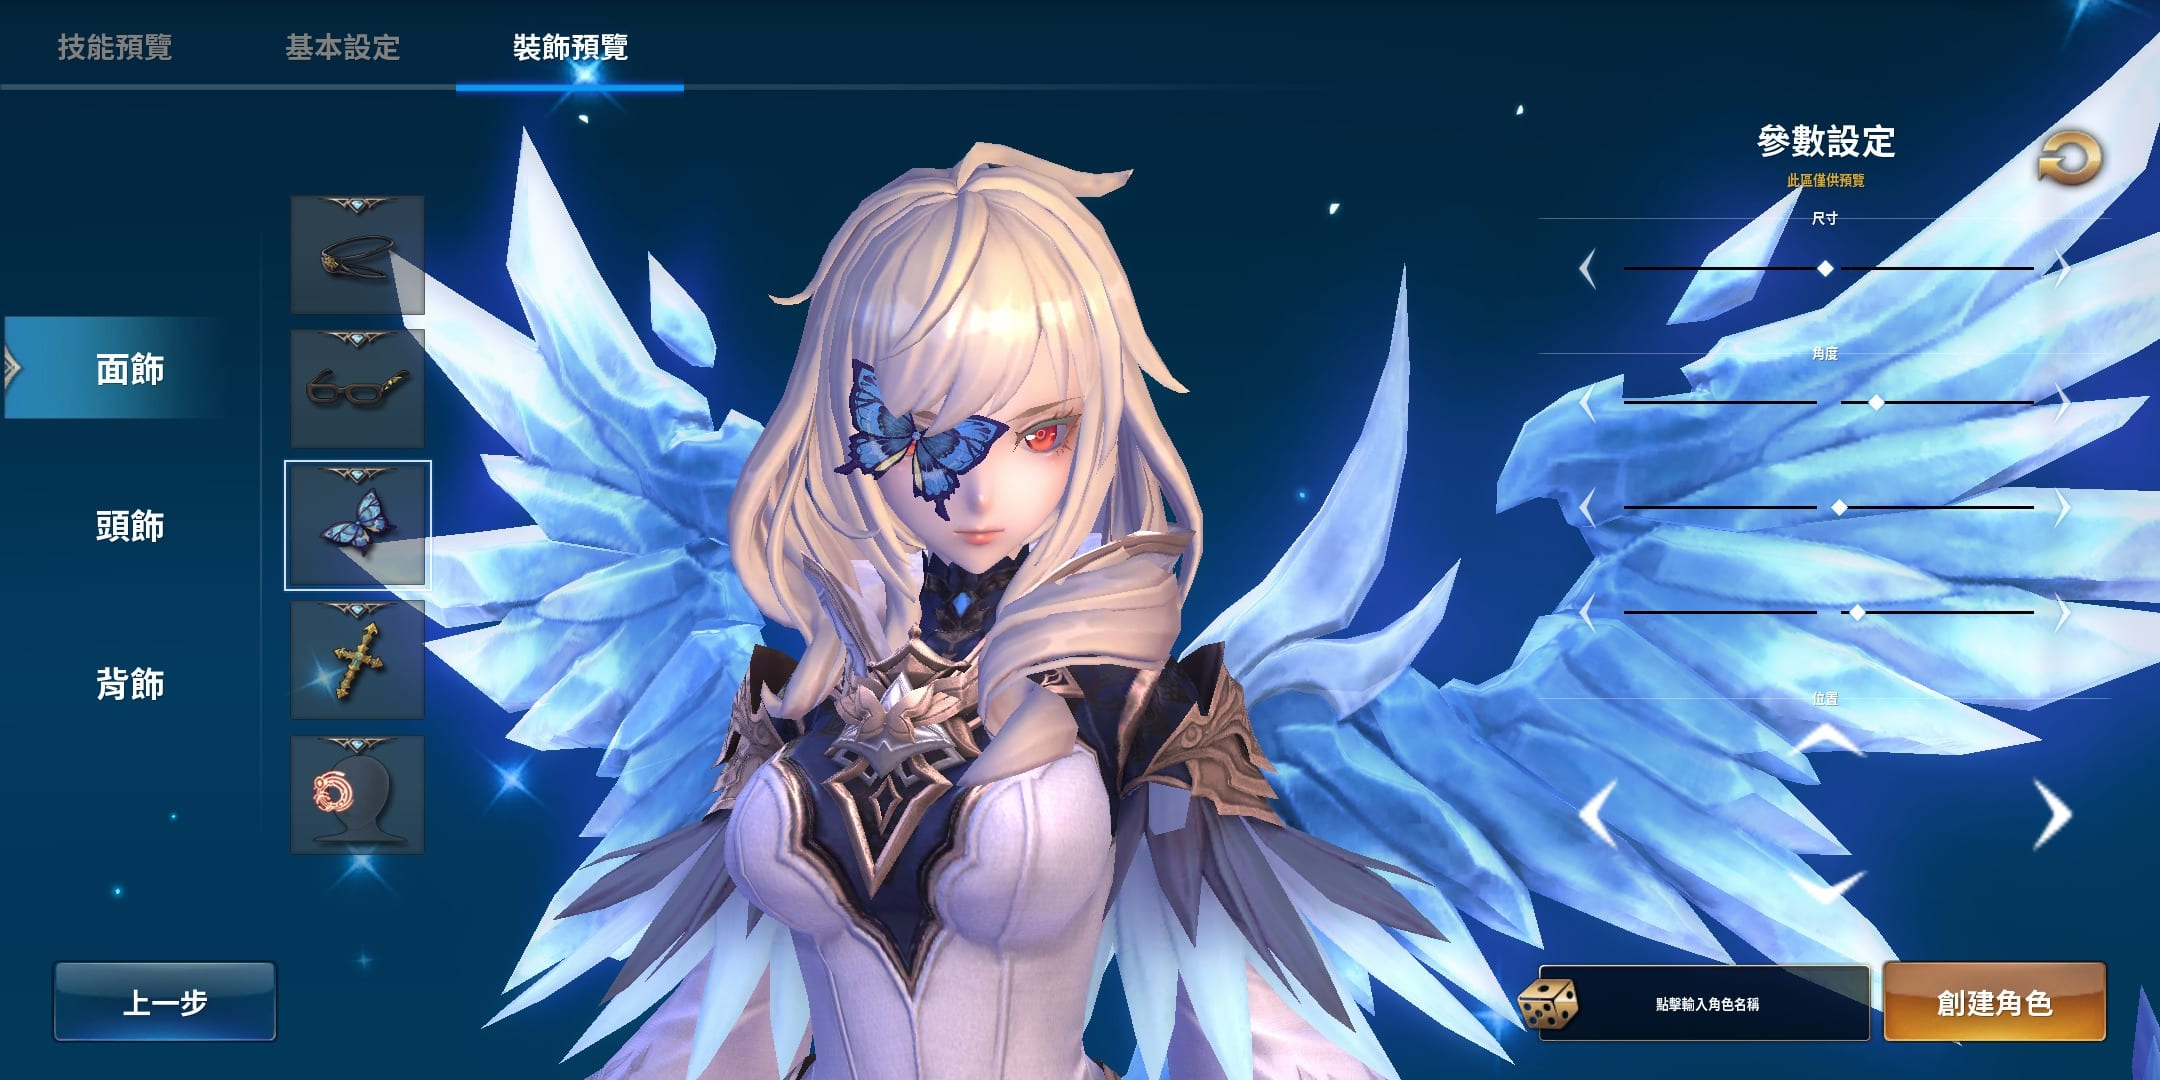 Aura Kingdom 2 – X-Legend announces sequel to popular fantasy MMORPG